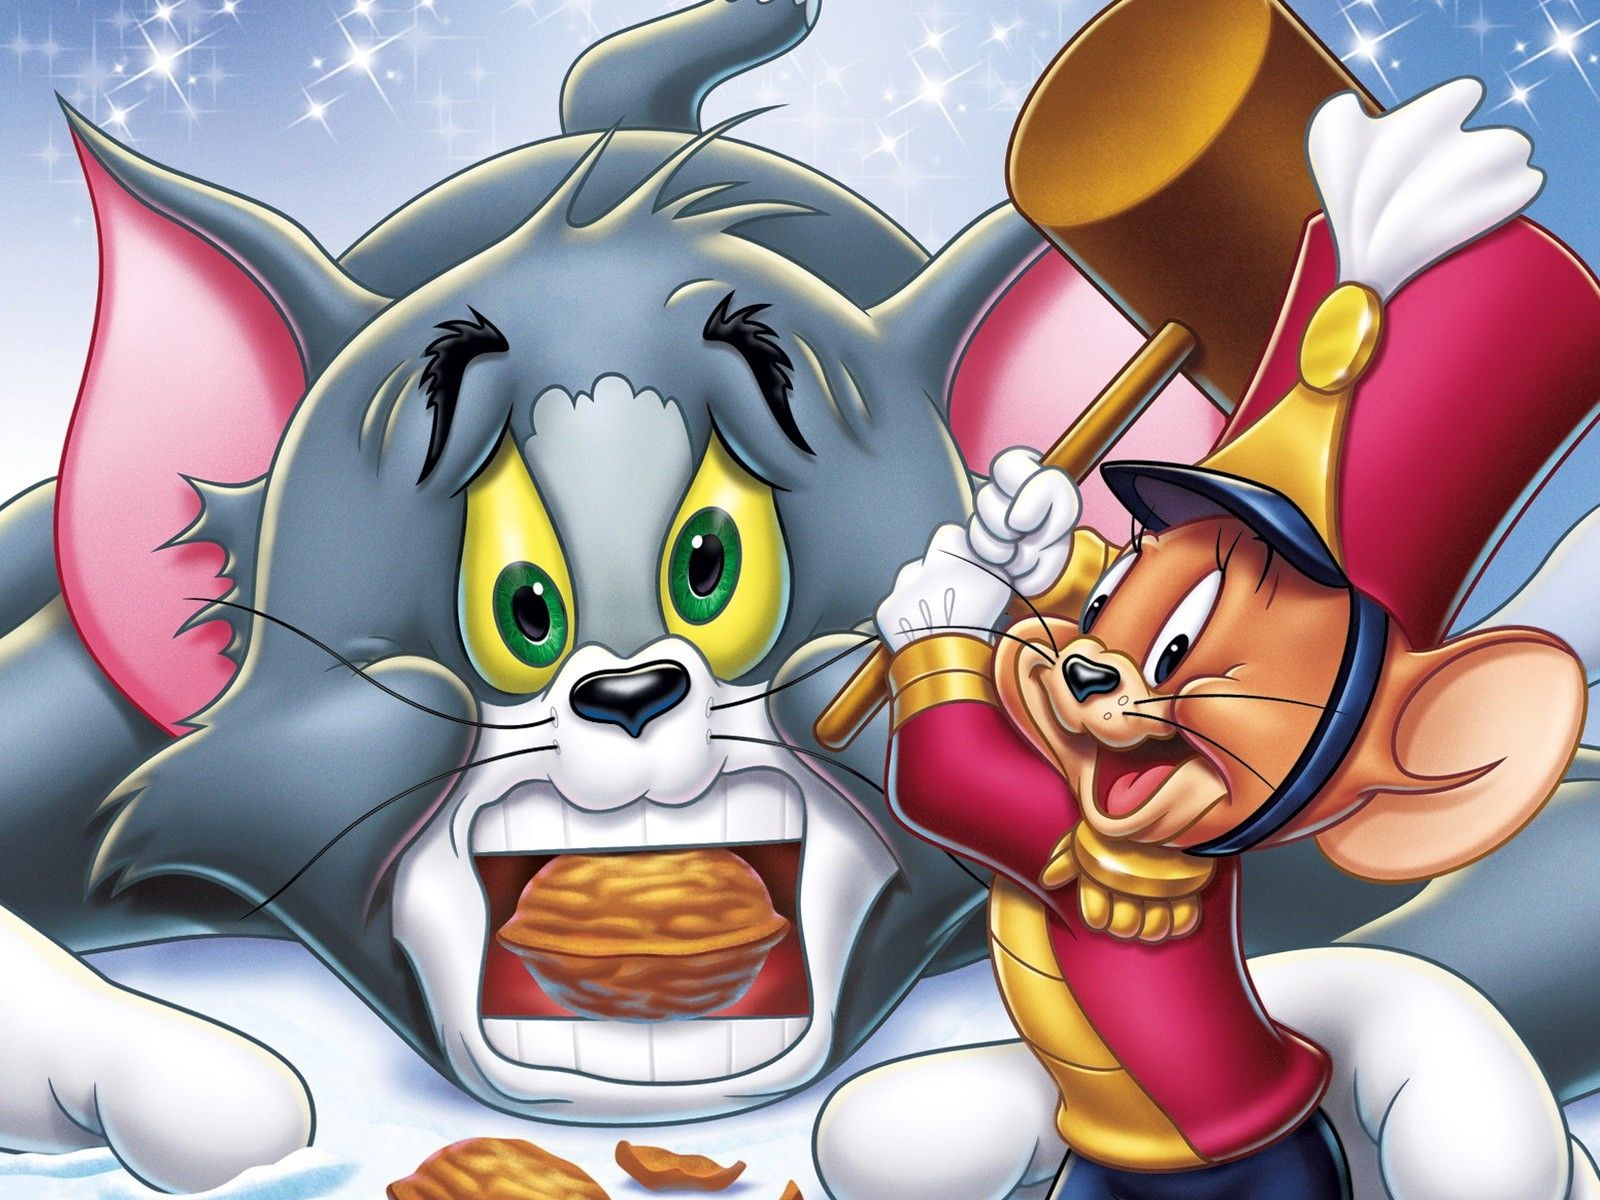 Tom And Jerry Wallpapers 1920 1080 Tom And Jerry 3d Wallpapers 48 Wallpapers Adorable Wallpapers Tom Y Jerry Fotos Ineditas Peliculas De Disney